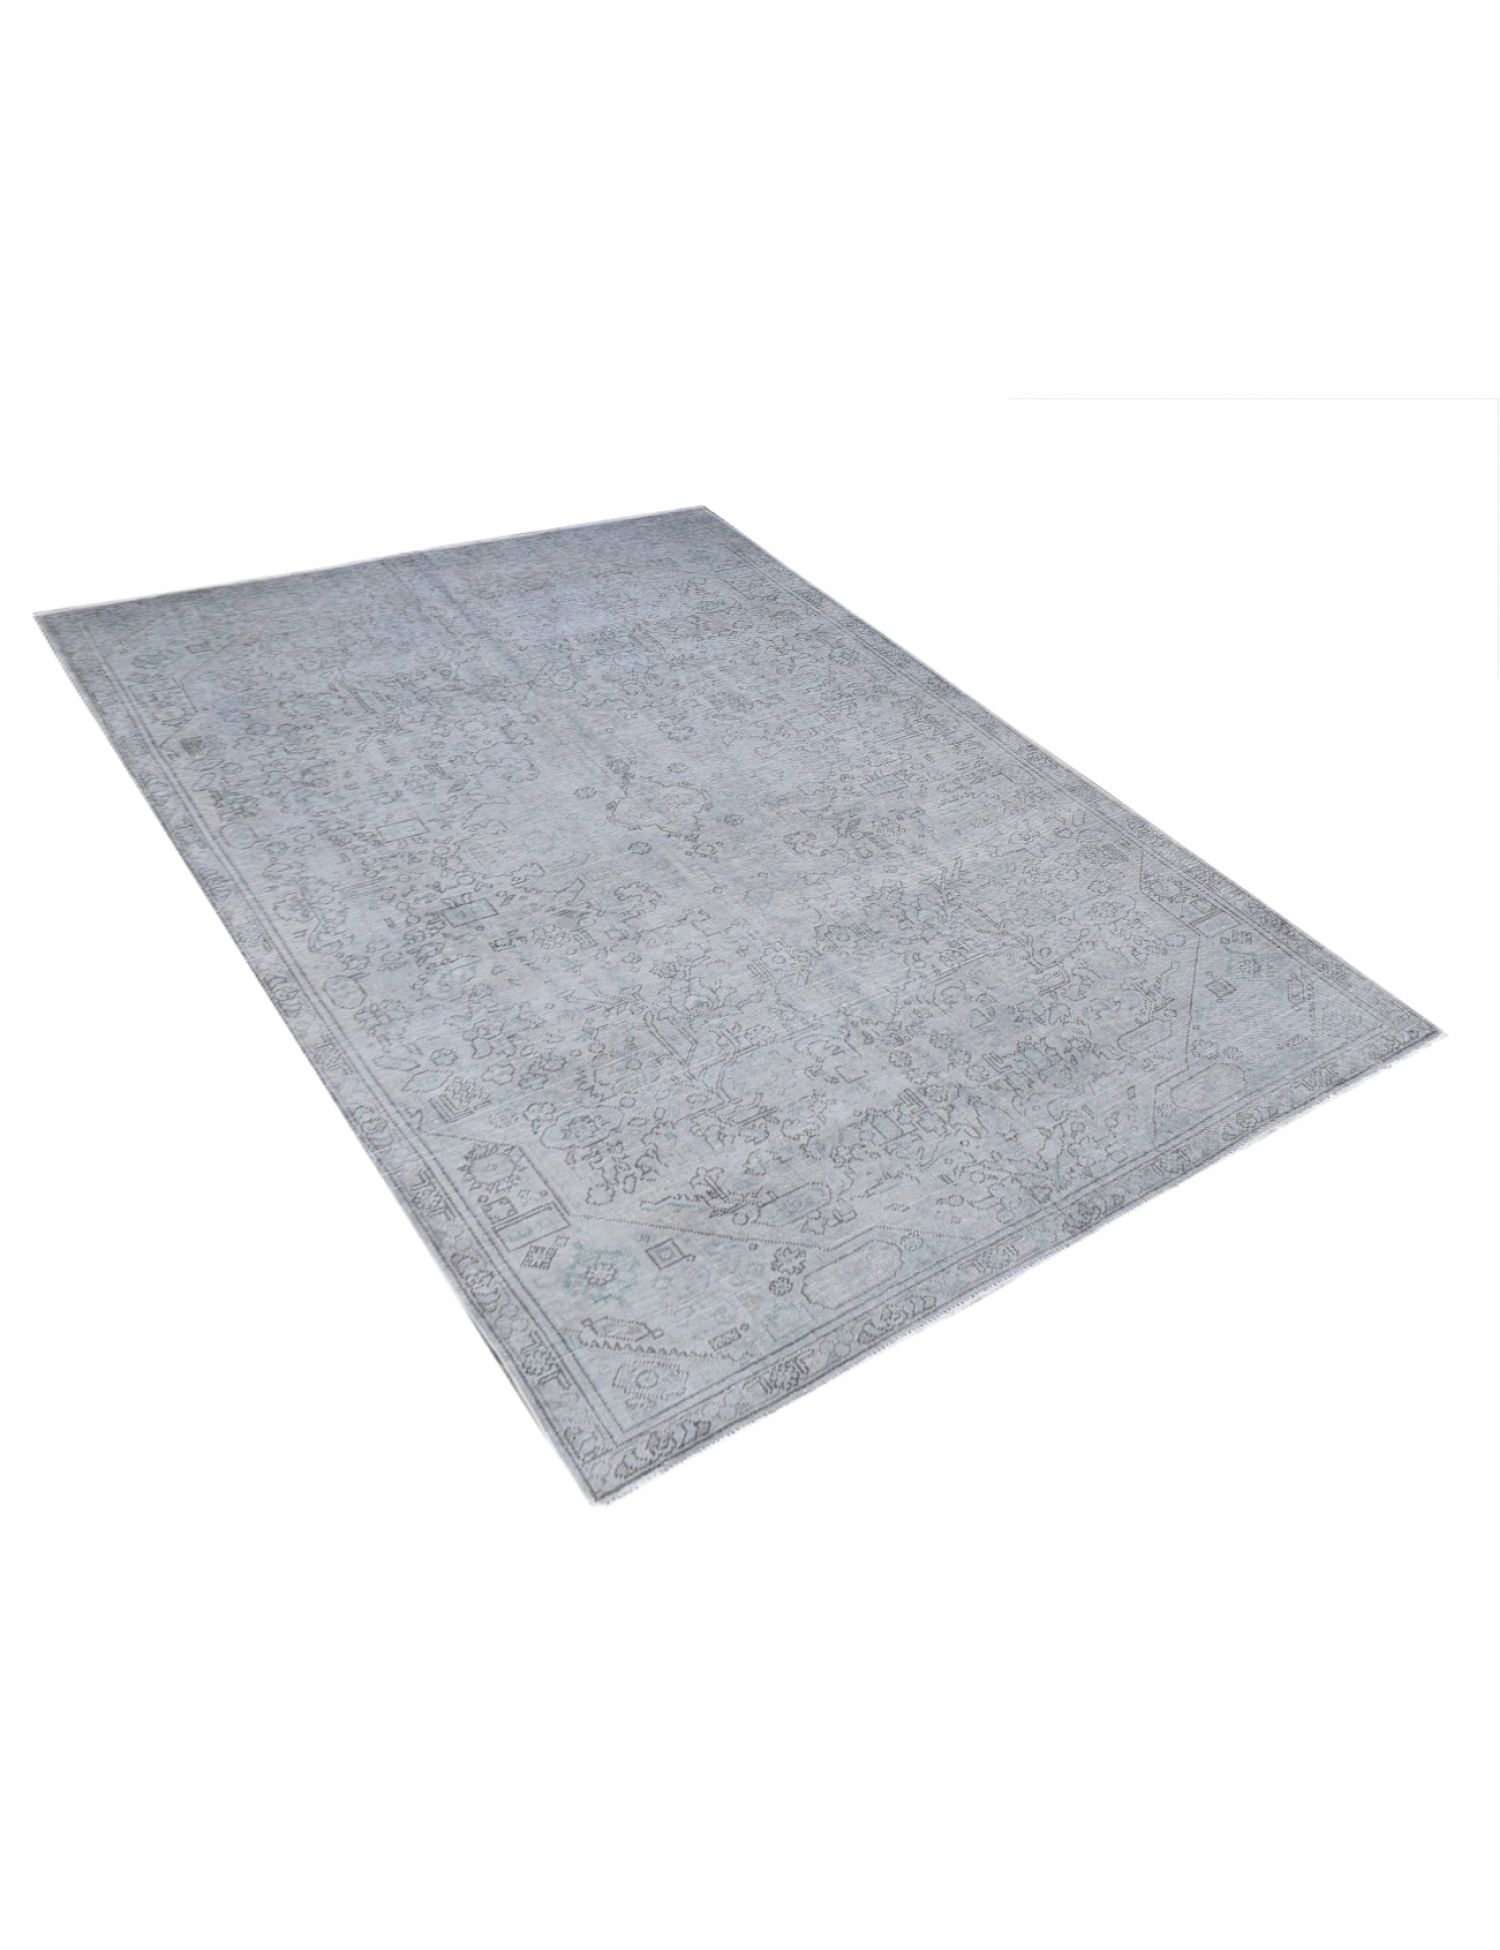 Vintage Carpet  grey <br/>265 x 178 cm